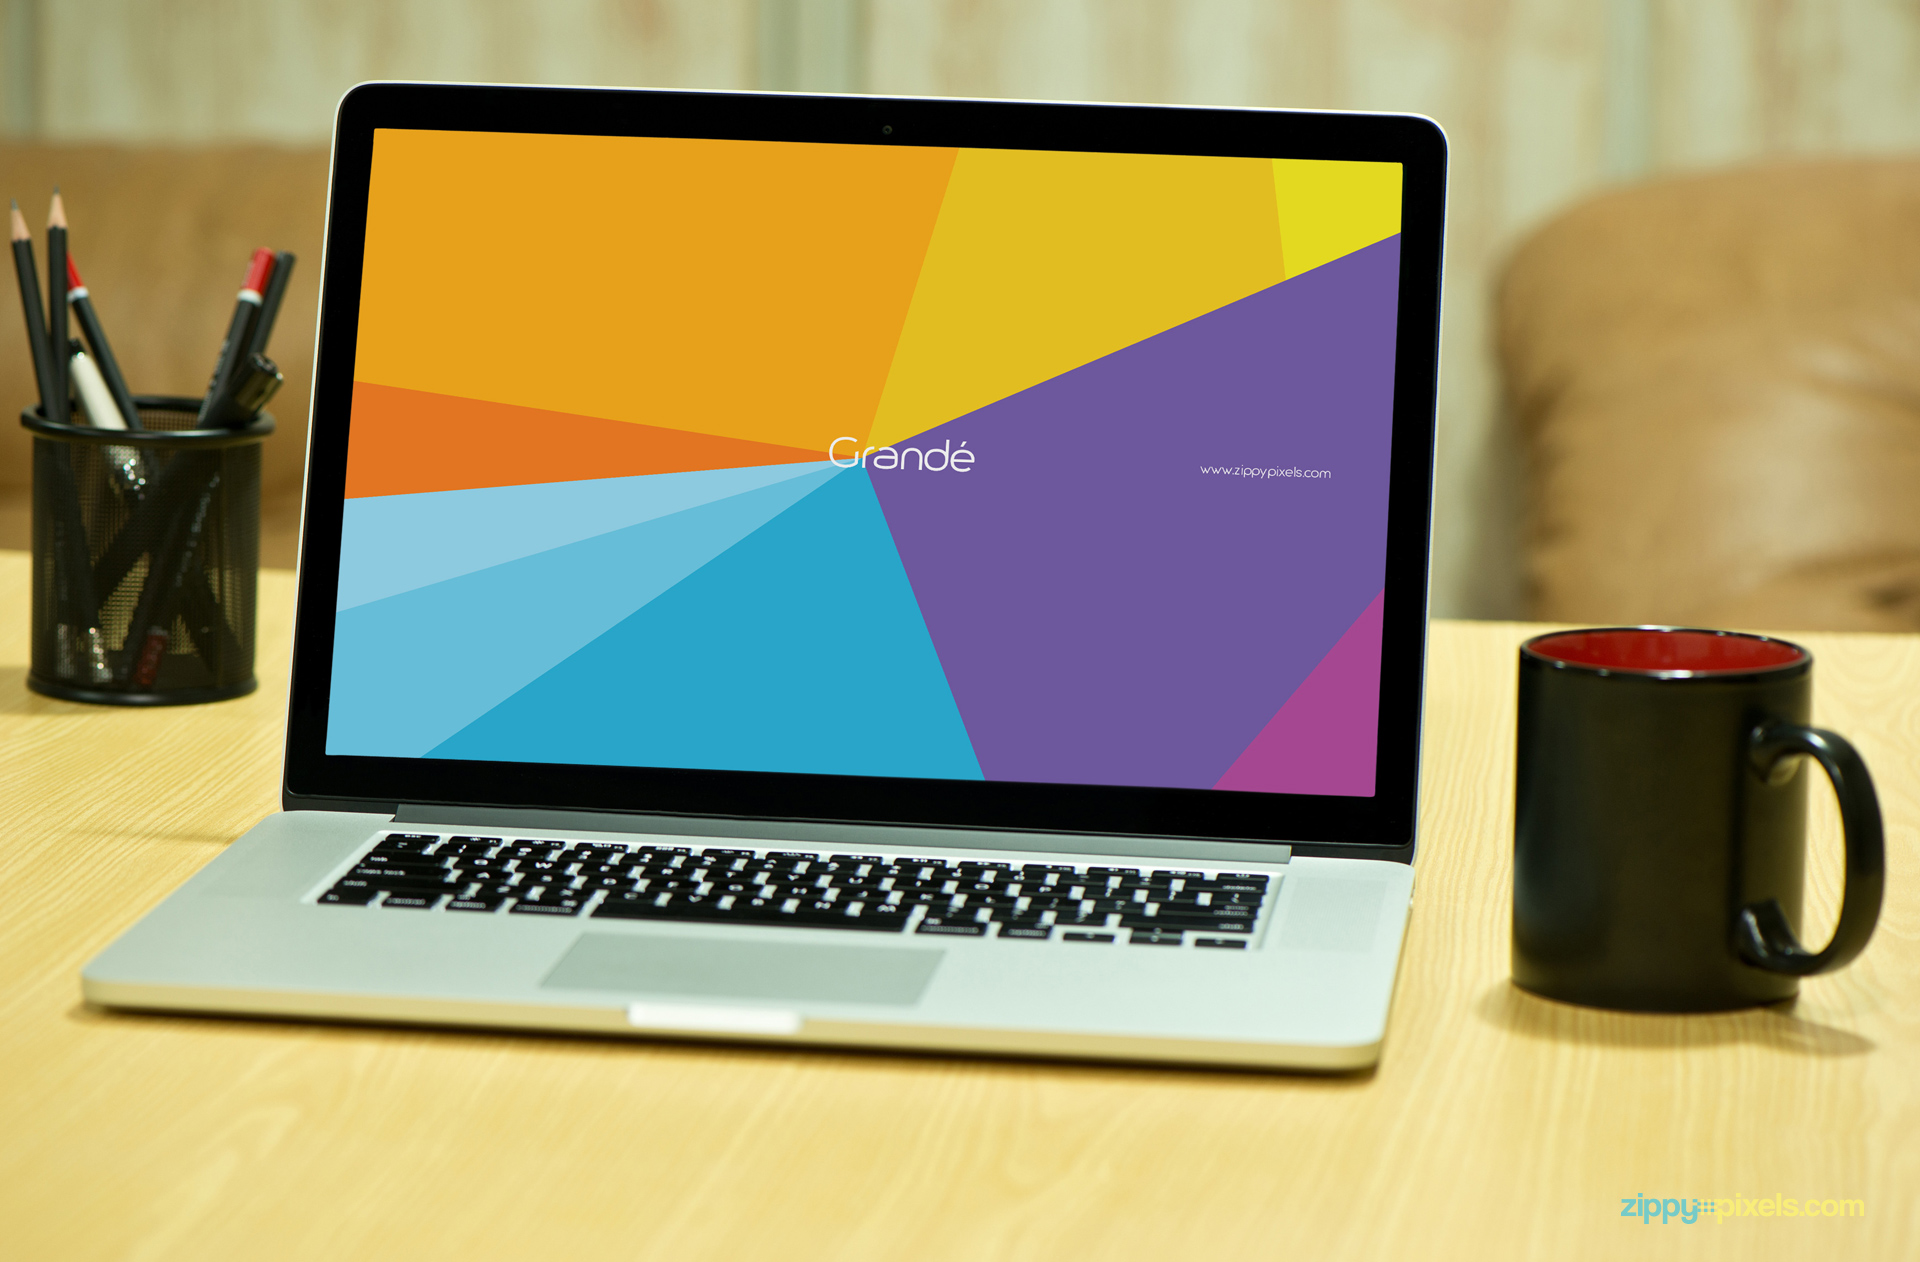 Macbook Pro with Black mug on Table for Mockup